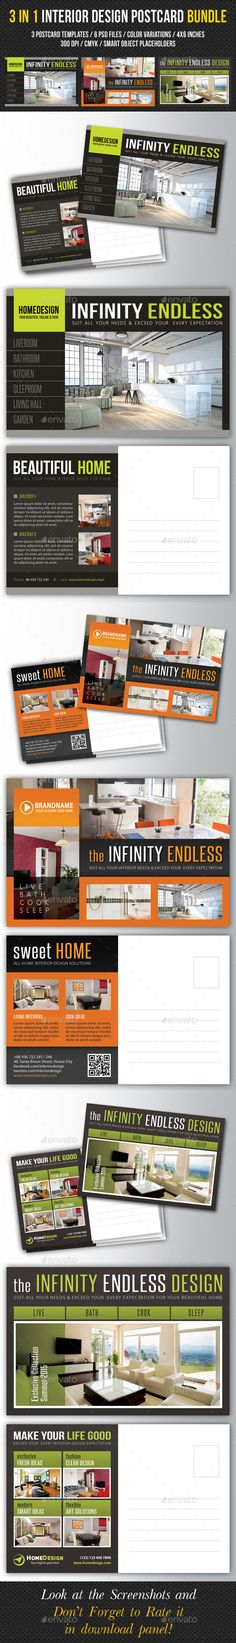 3 In 1 Interior Design Postcard Template Bundle 02